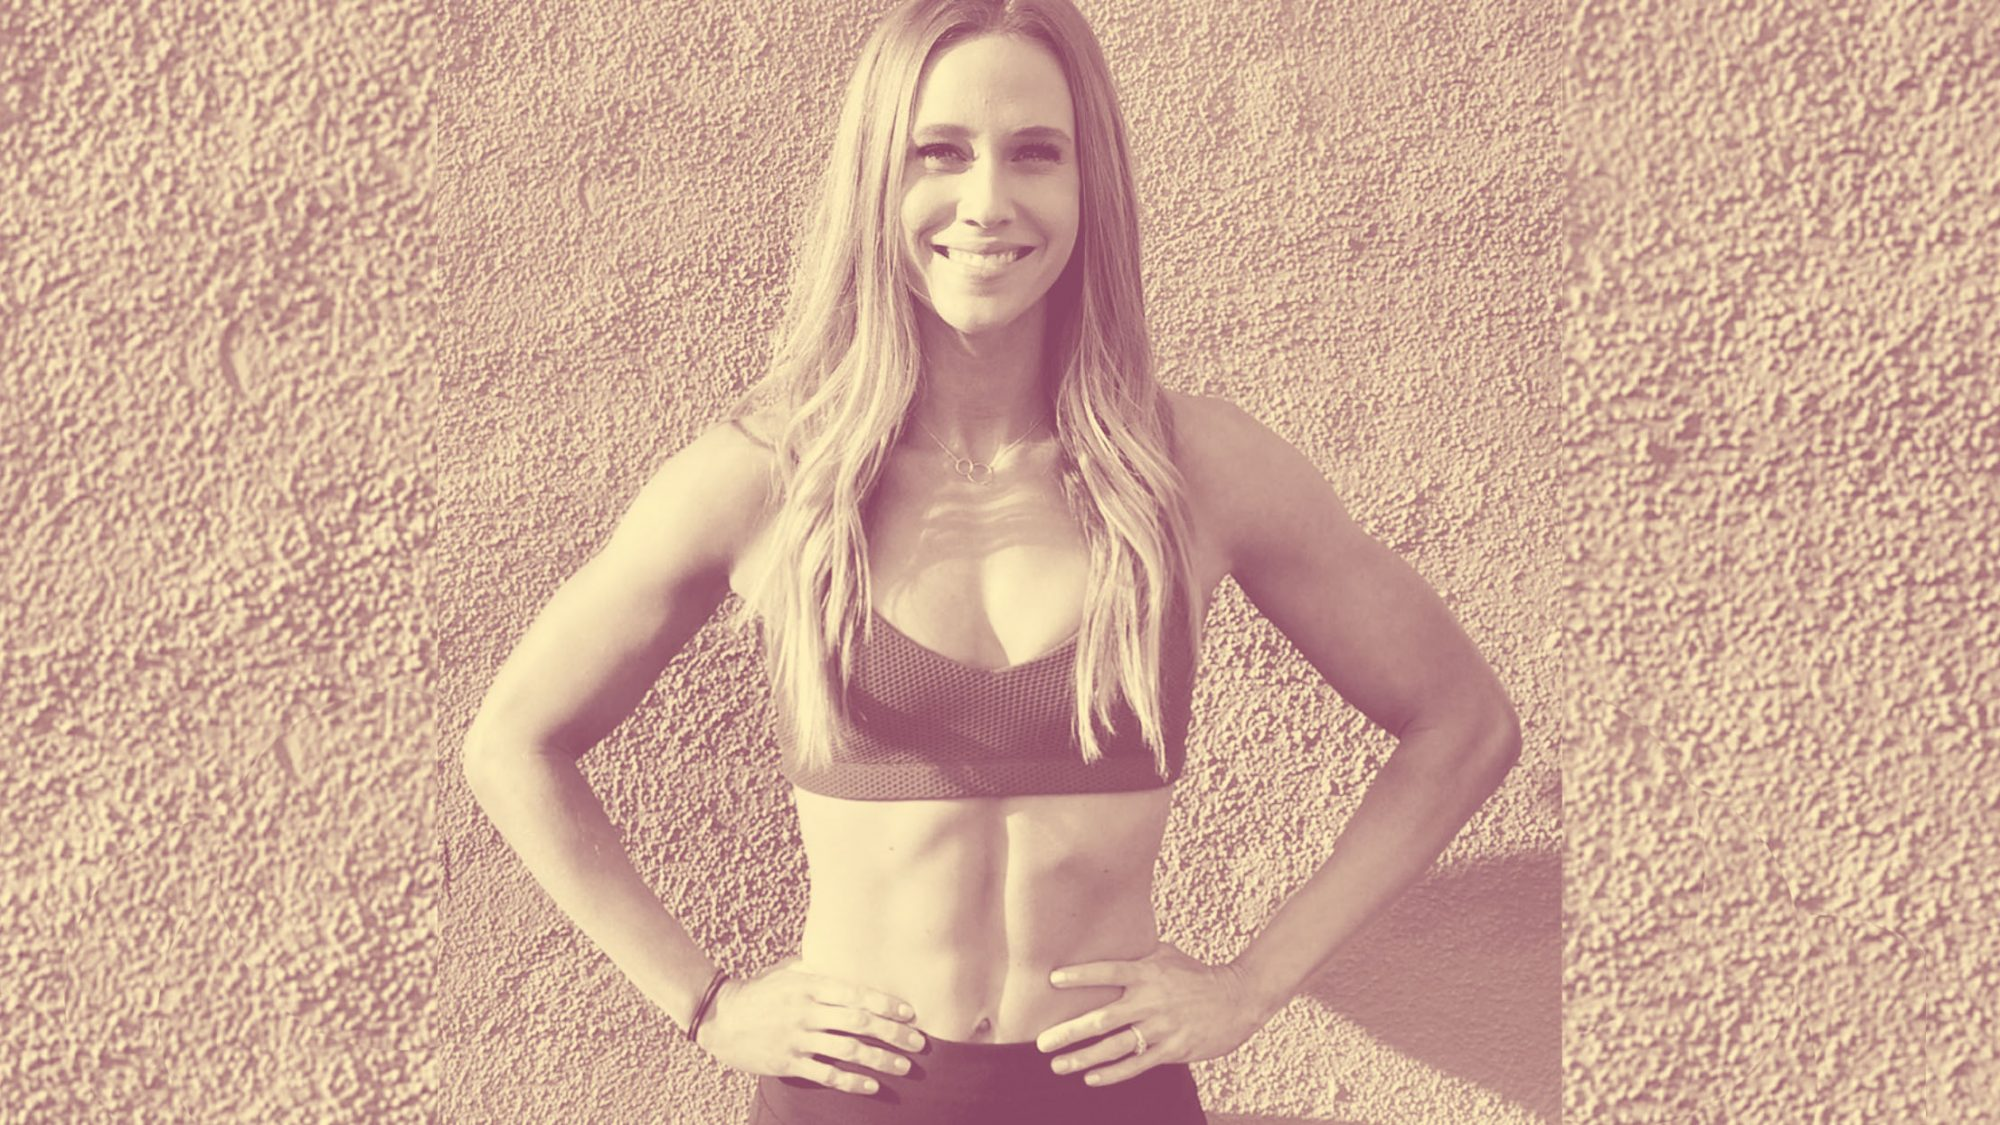 kelsey-heenan fitness instructor woman health wellbeing boobs instagram social-media body-positive